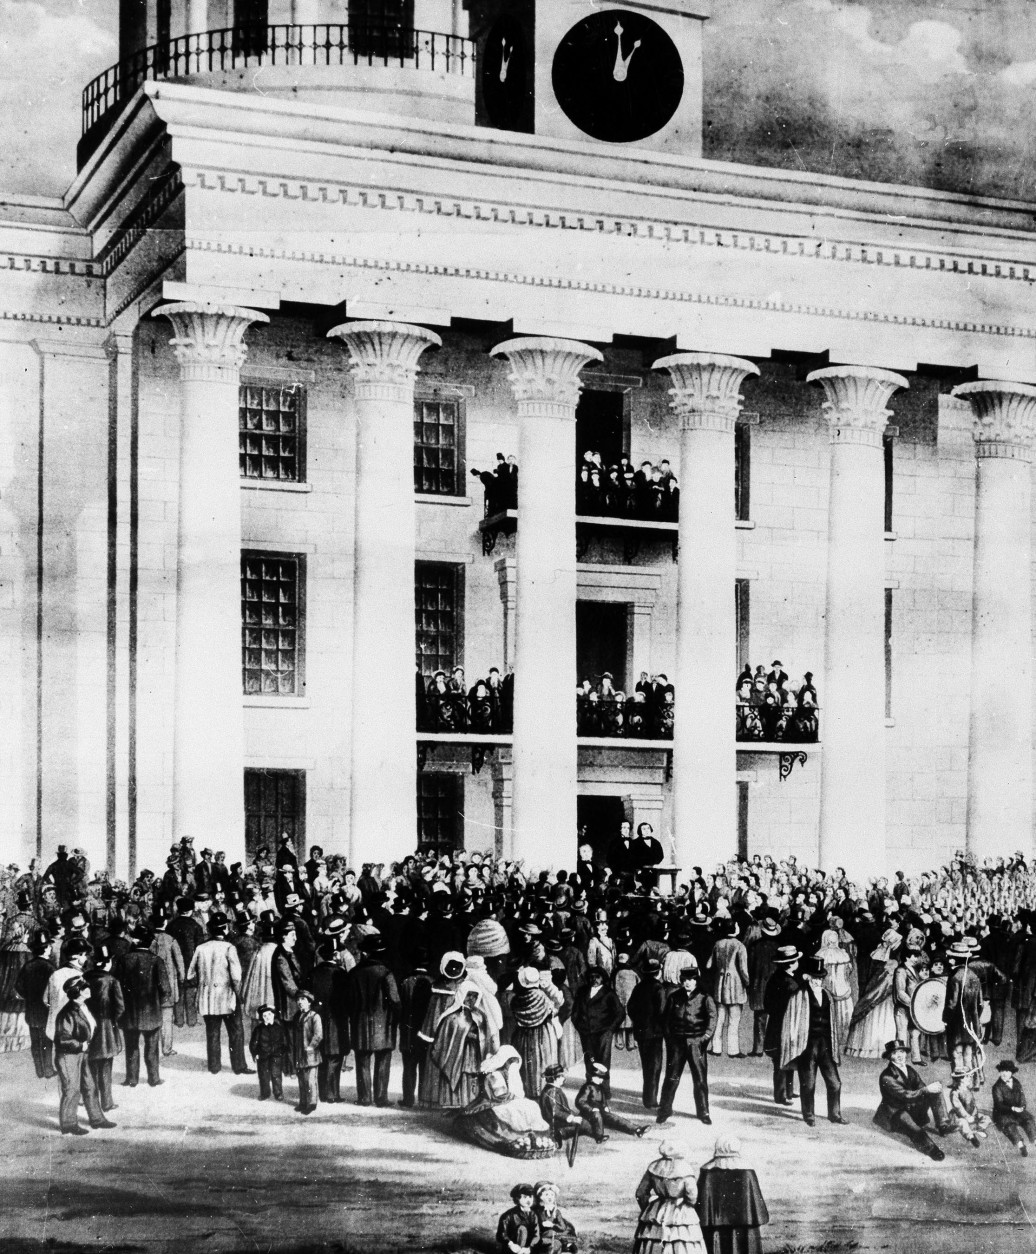 This was the scene during the inauguration of the President of the Confederate States of America, Jefferson Davis, Feb. 18, 1861, in Montgomery, Ala., painted by artist James Mamelon from a photograph taken on the spot and owned by Col. William C. Howell.  (AP Photo)